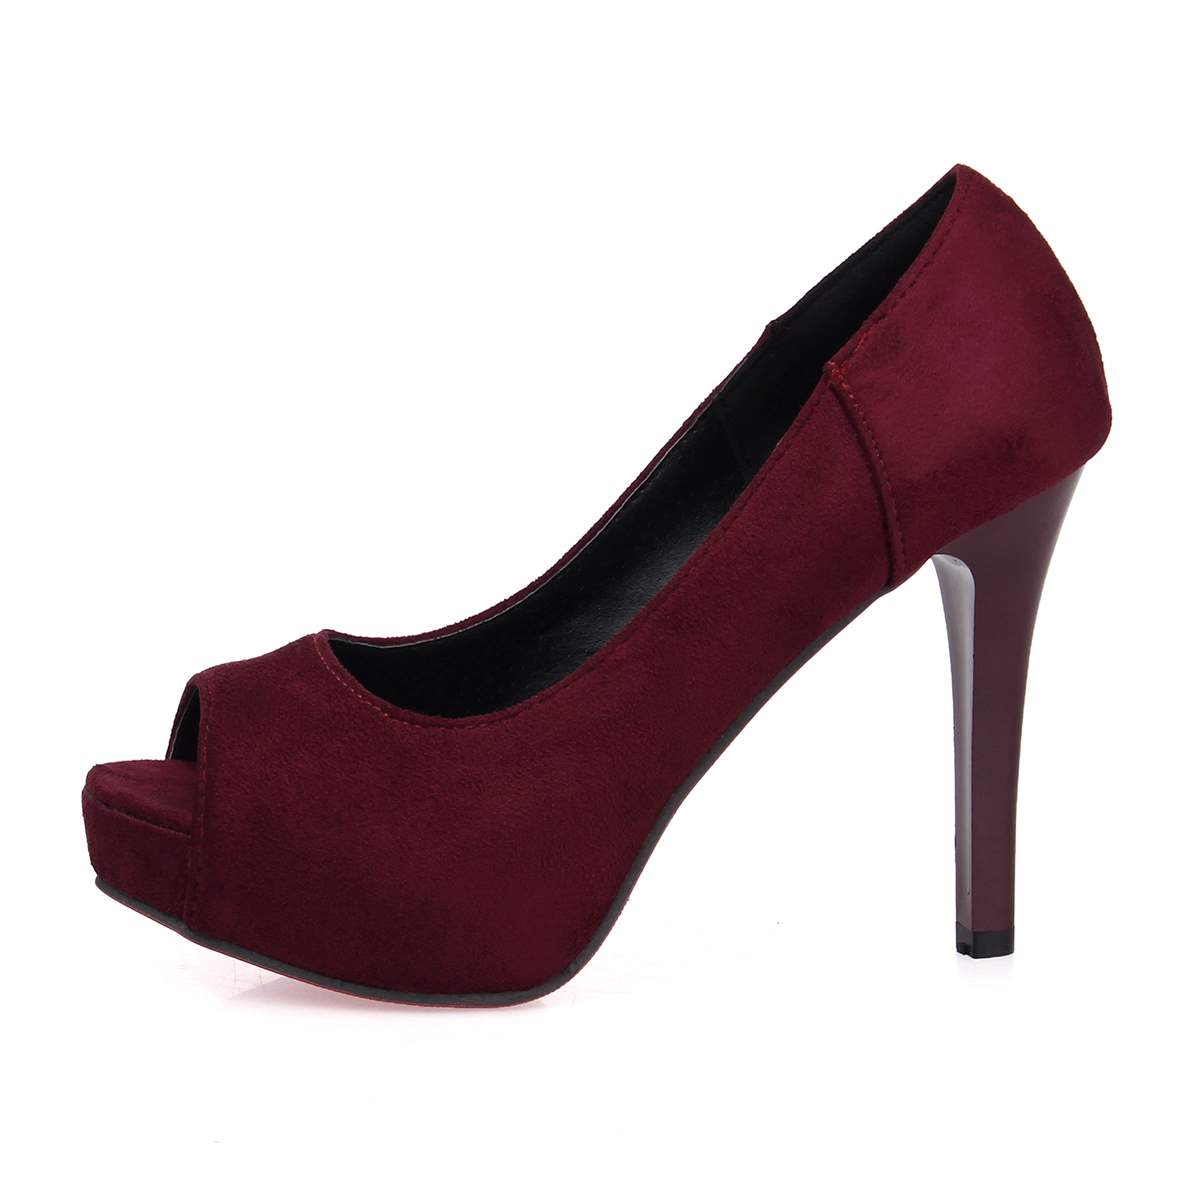 Ericdress Suede Platform Slip-On Peep Toe Stiletto Heel Pumps